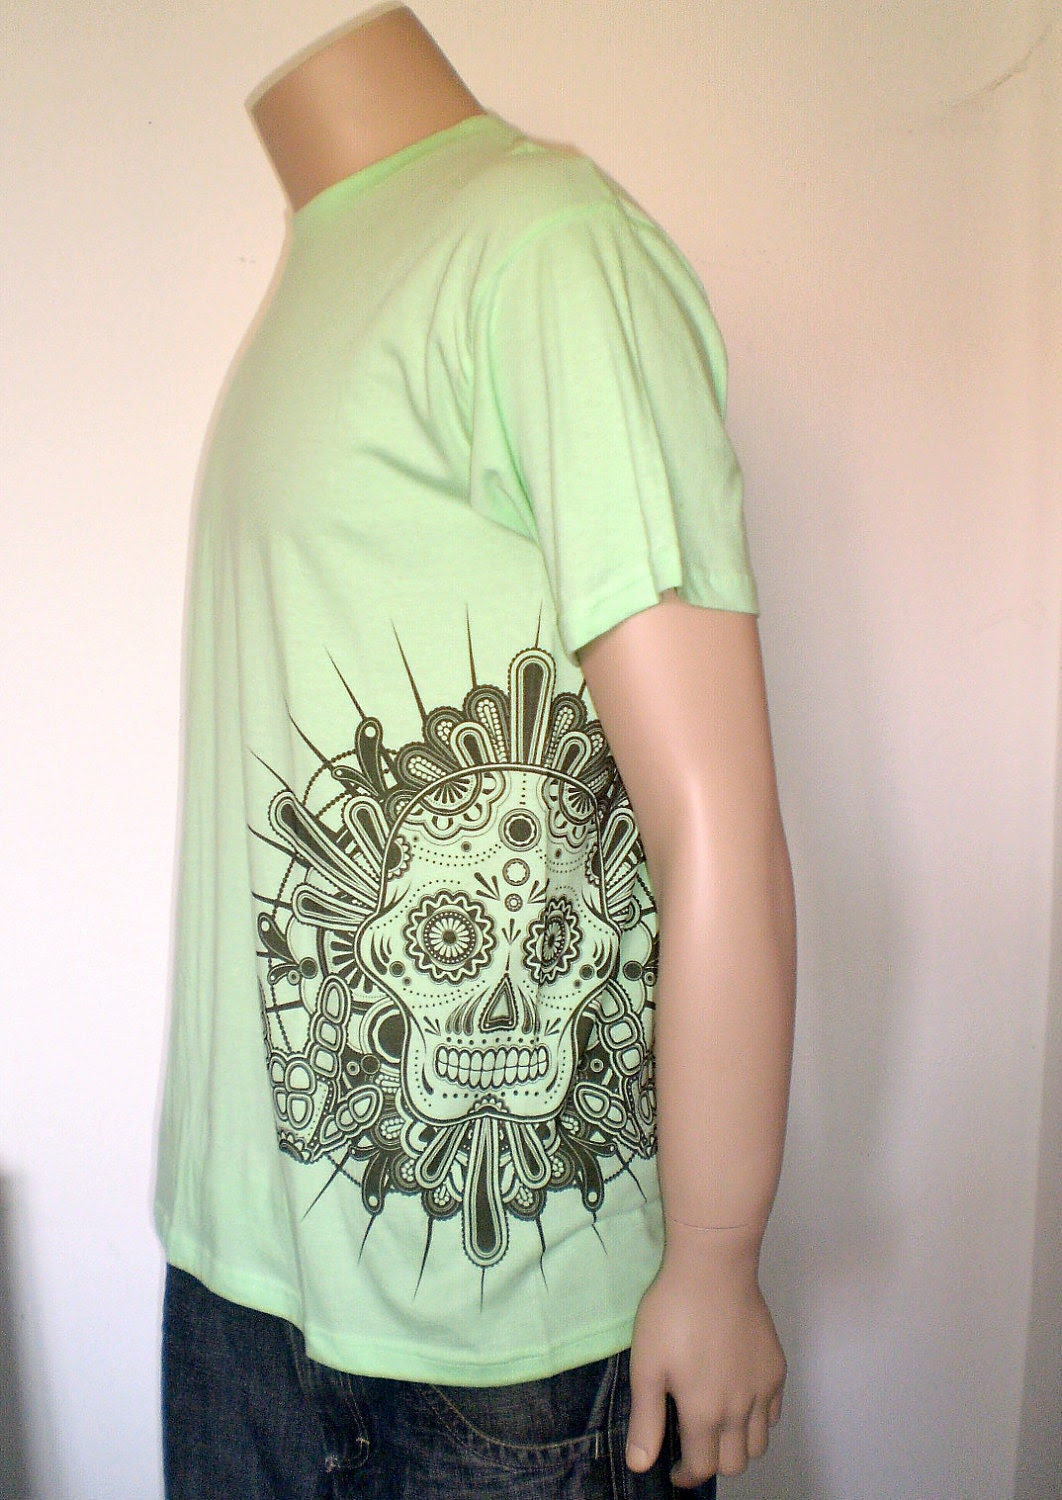 Printed T-shirt for men - mint tee - with sugar skull on the left side